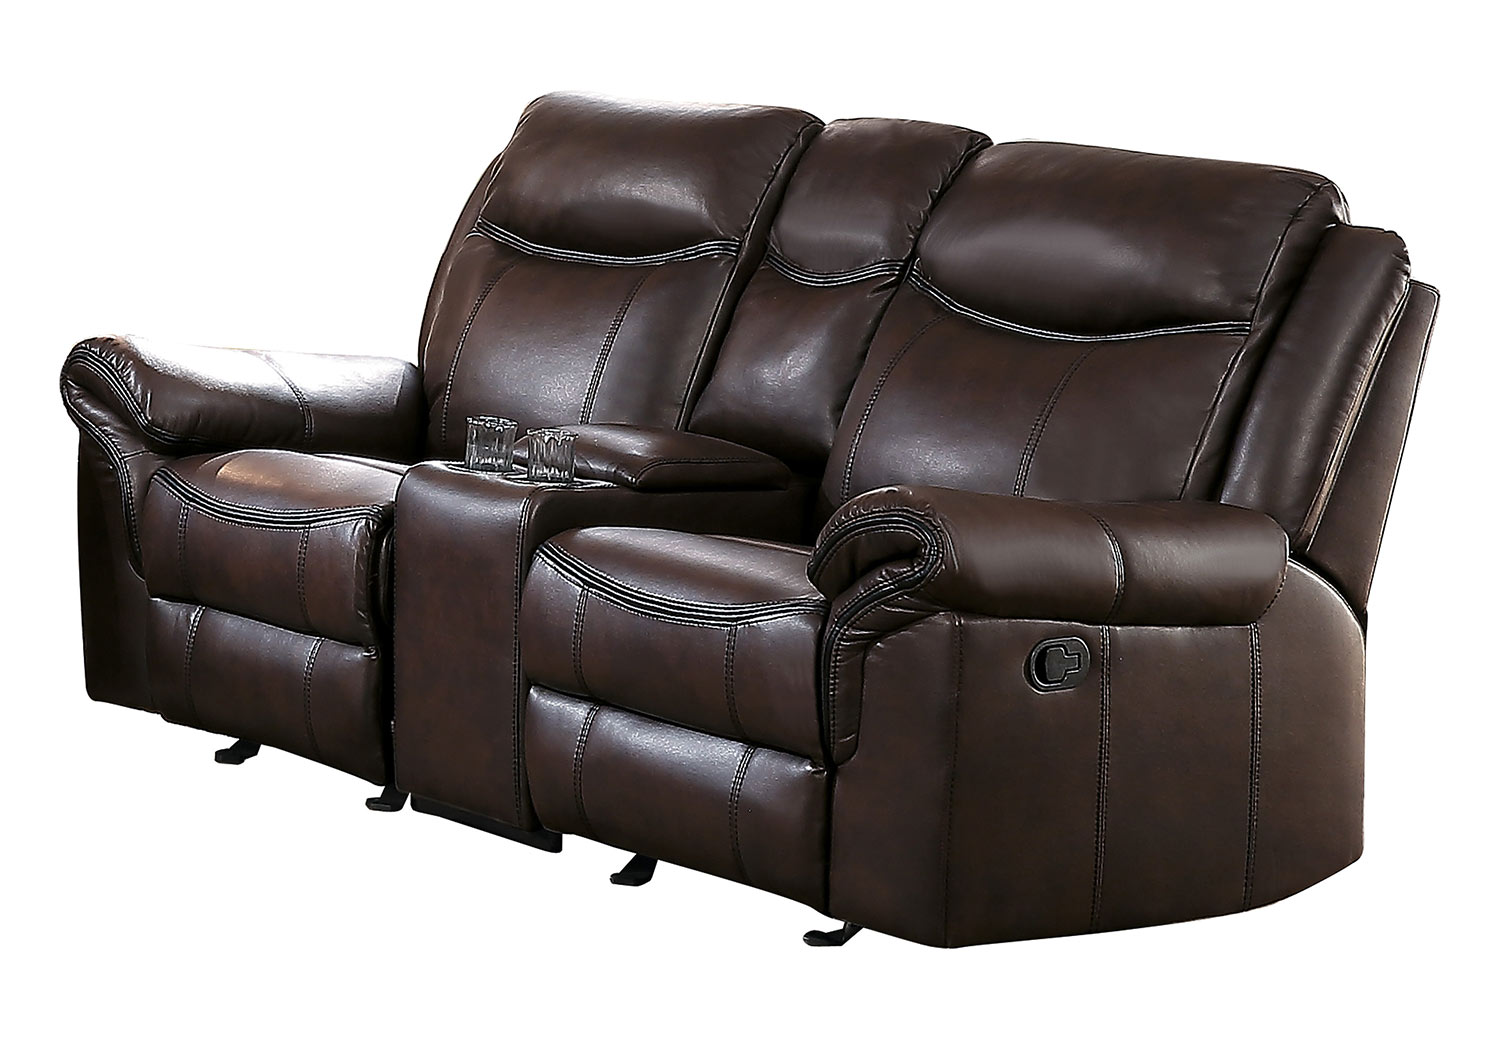 Homelegance Aram Double Glider Reclining Love Seat with Center Console and Receptacles - Dark Brown AireHyde Match